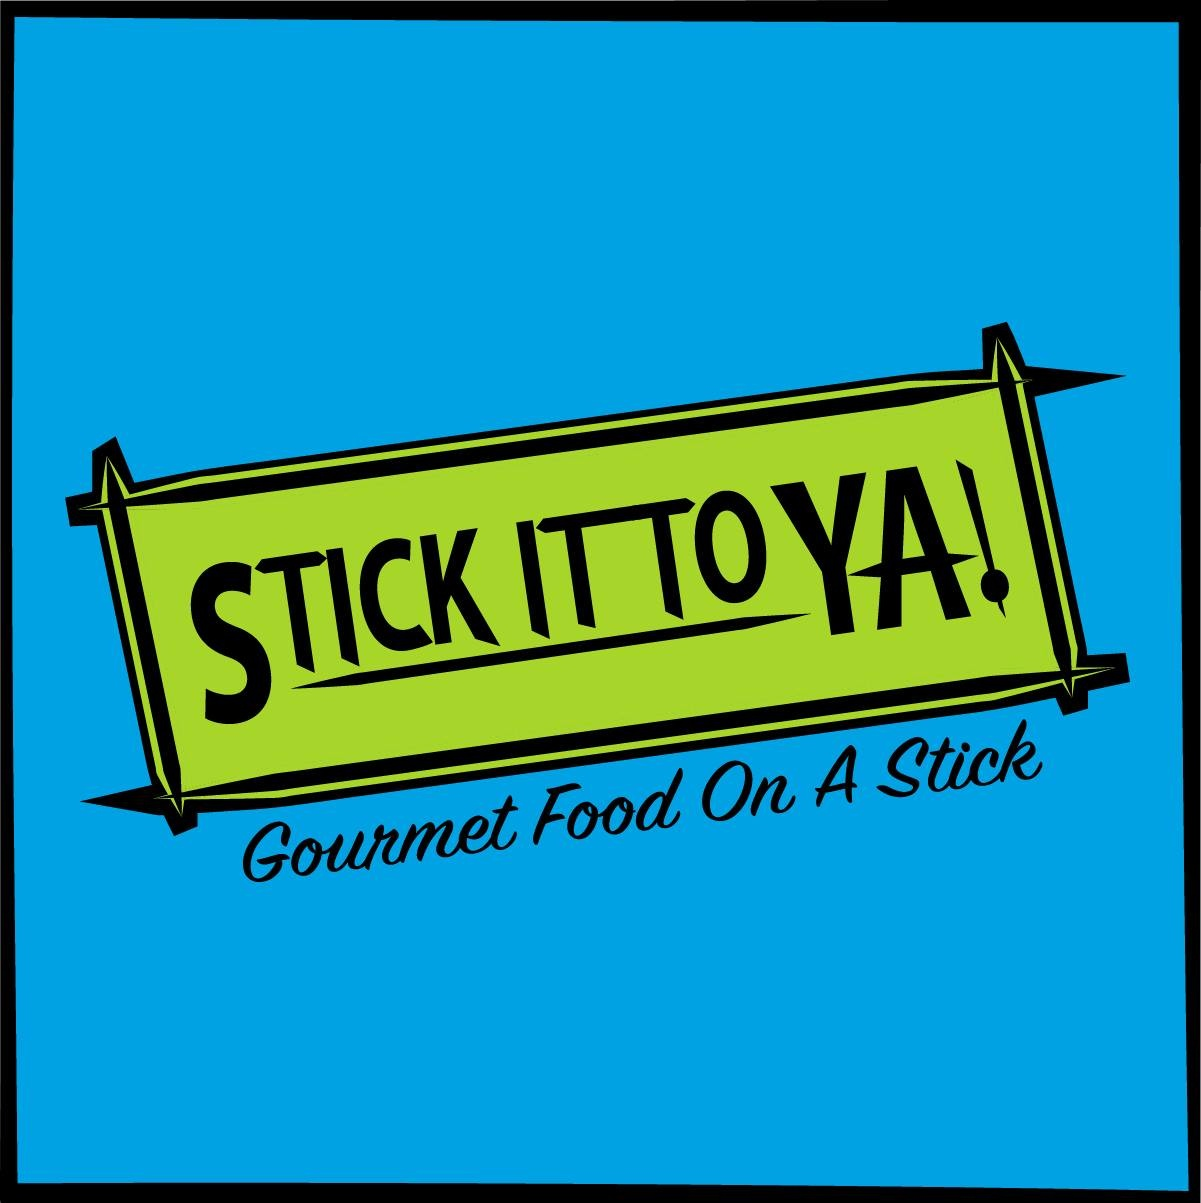 Stick It To Ya! logo